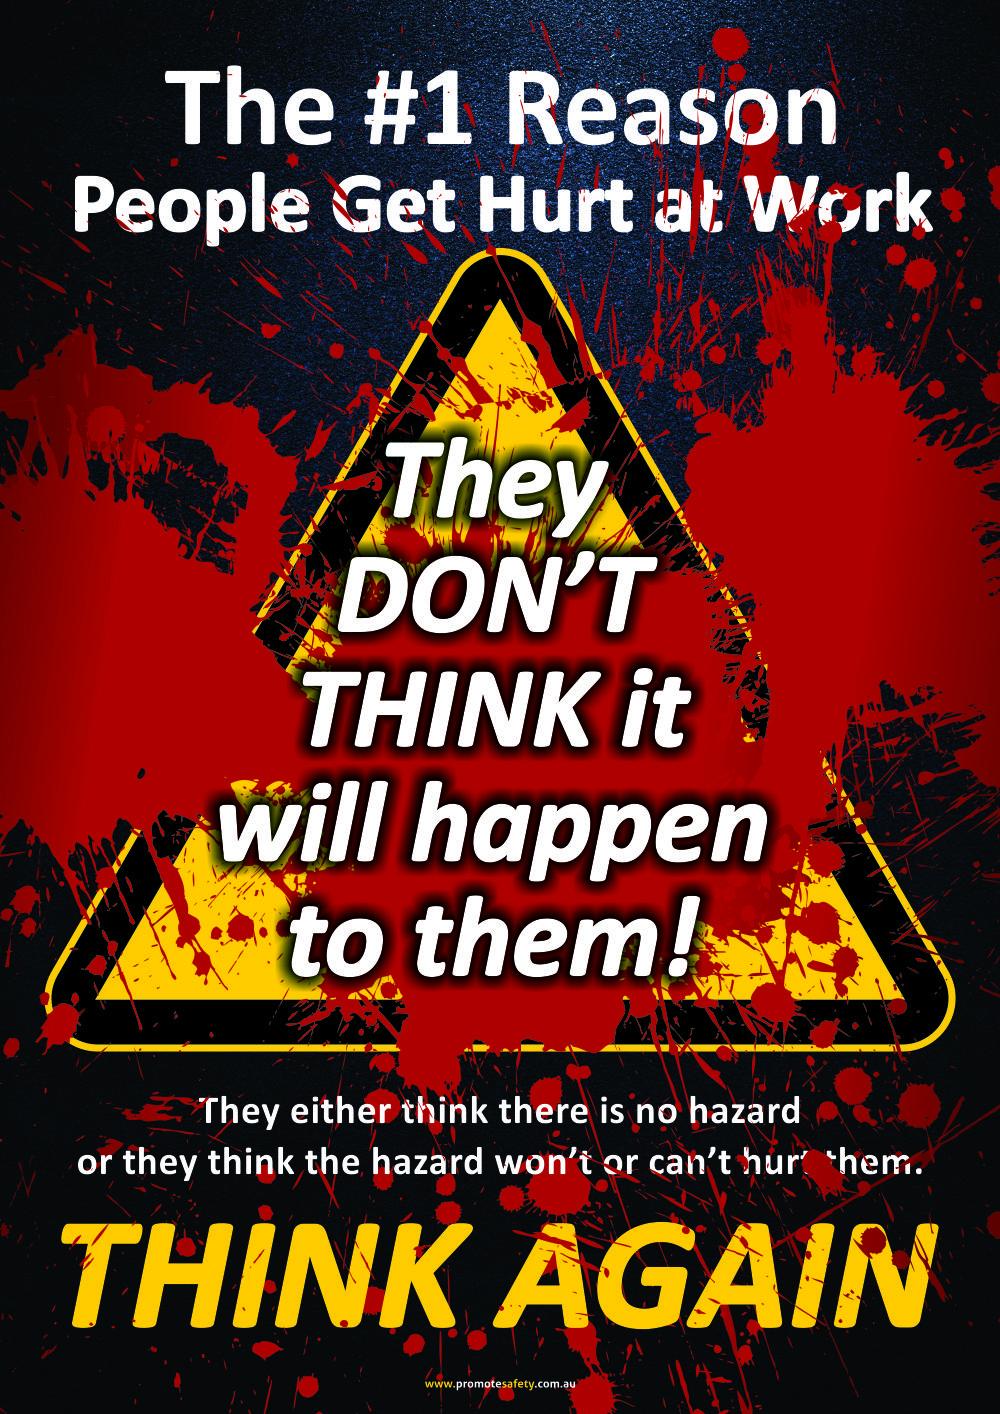 A3 Size Workplace Safety Poster encouraging workers to